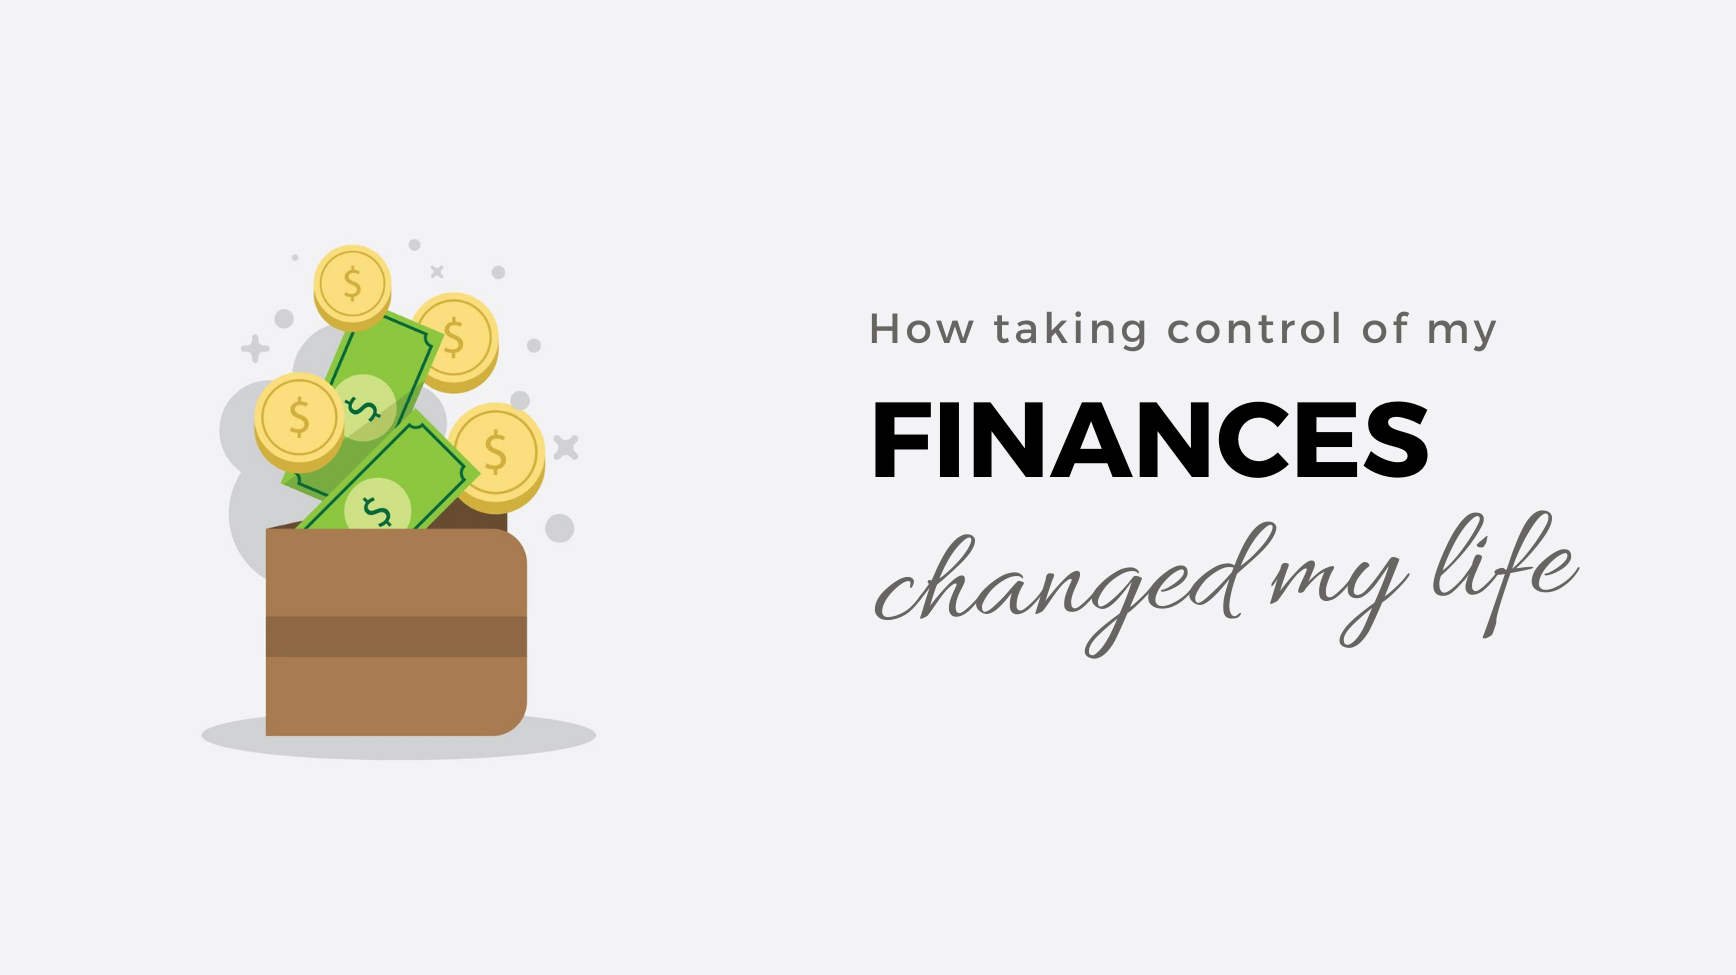 How Taking Care of My Finances Changed My Life